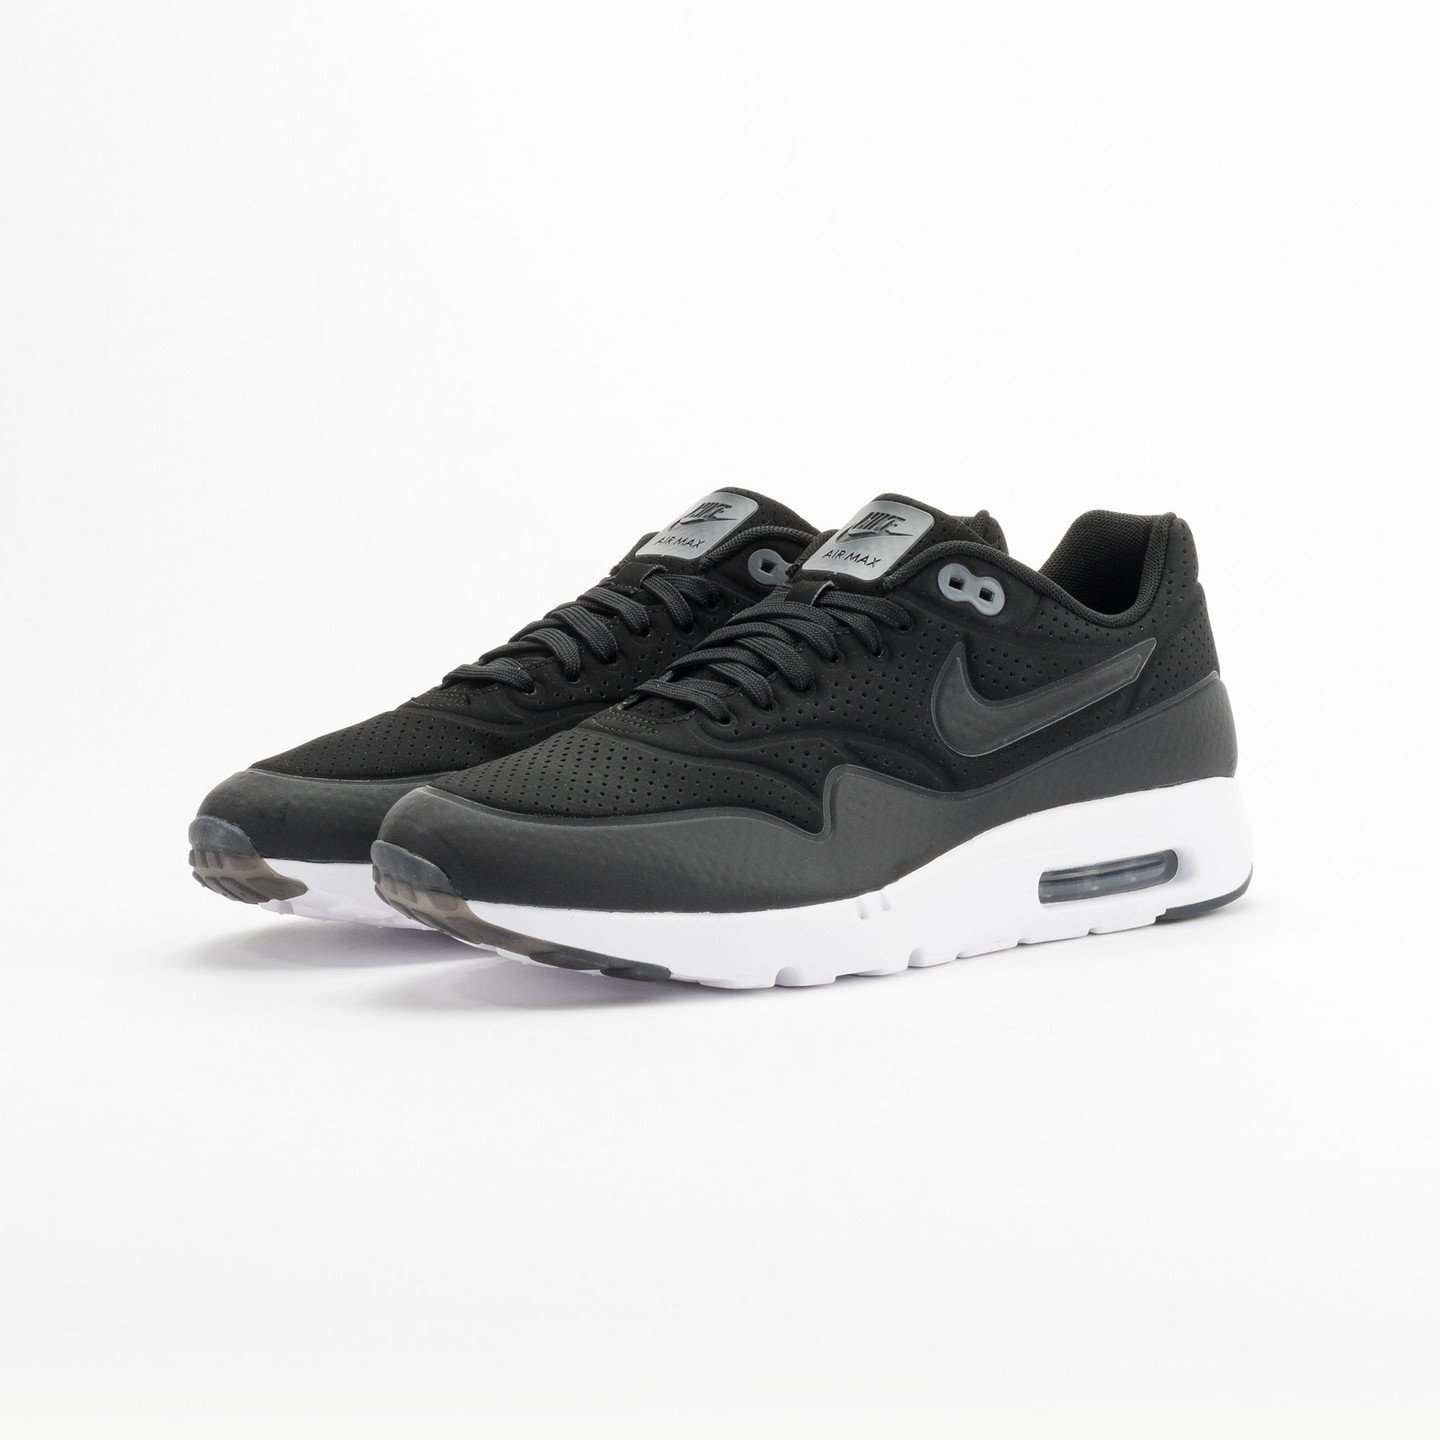 Nike Air Max 1 Ultra Moire Black Reflective / White 705297-010-45.5